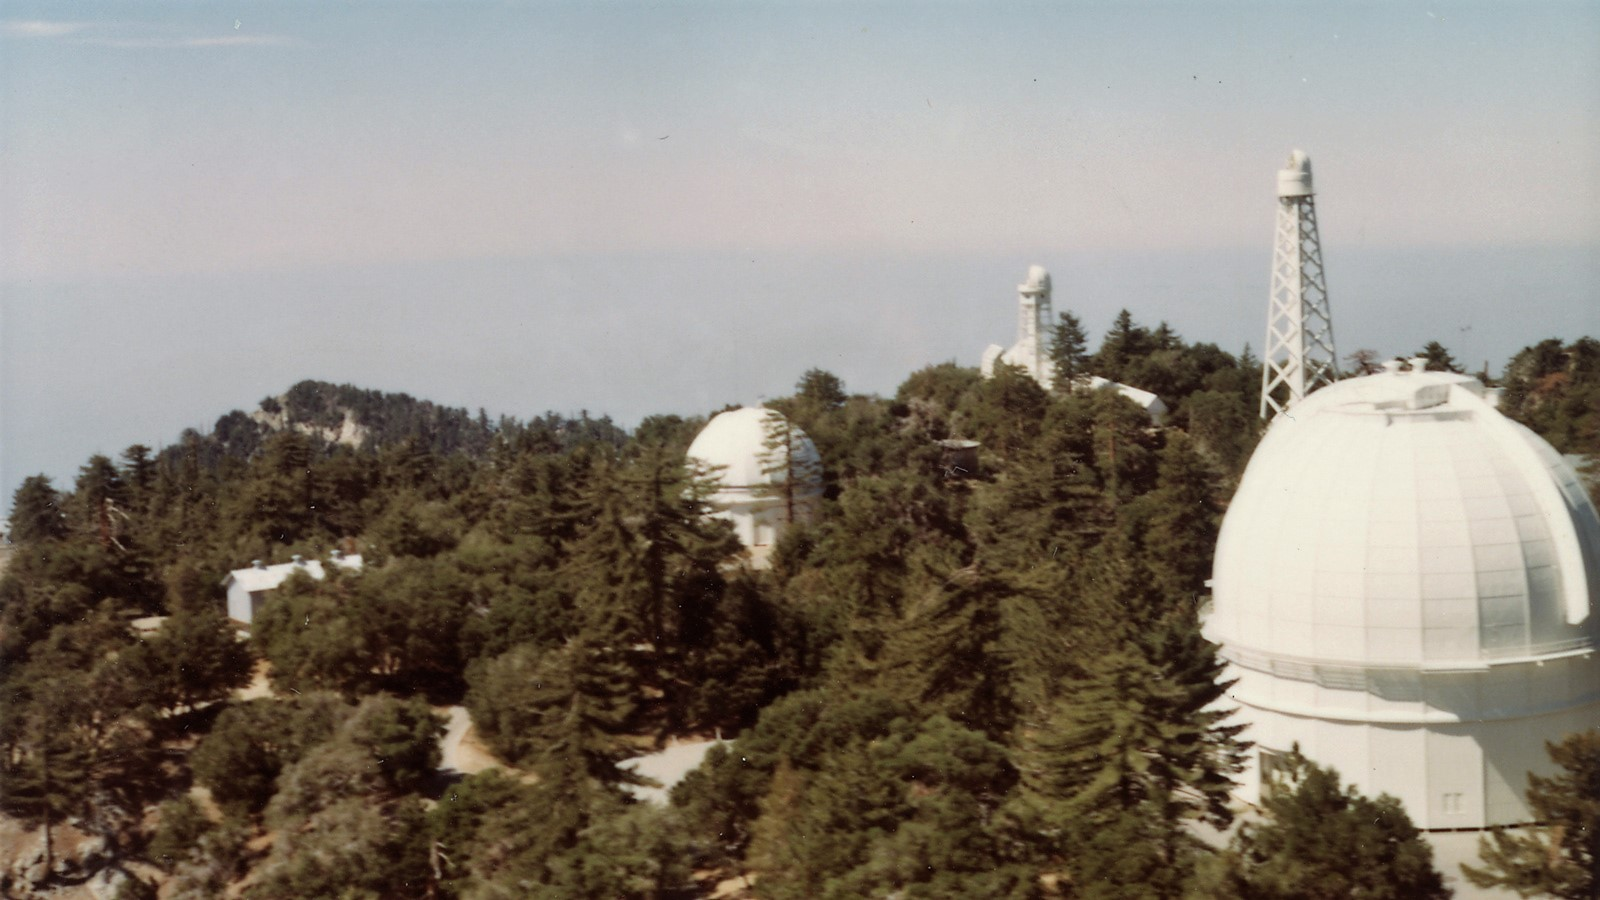 Mount Wilson 60-inch and 100-inch telescopes